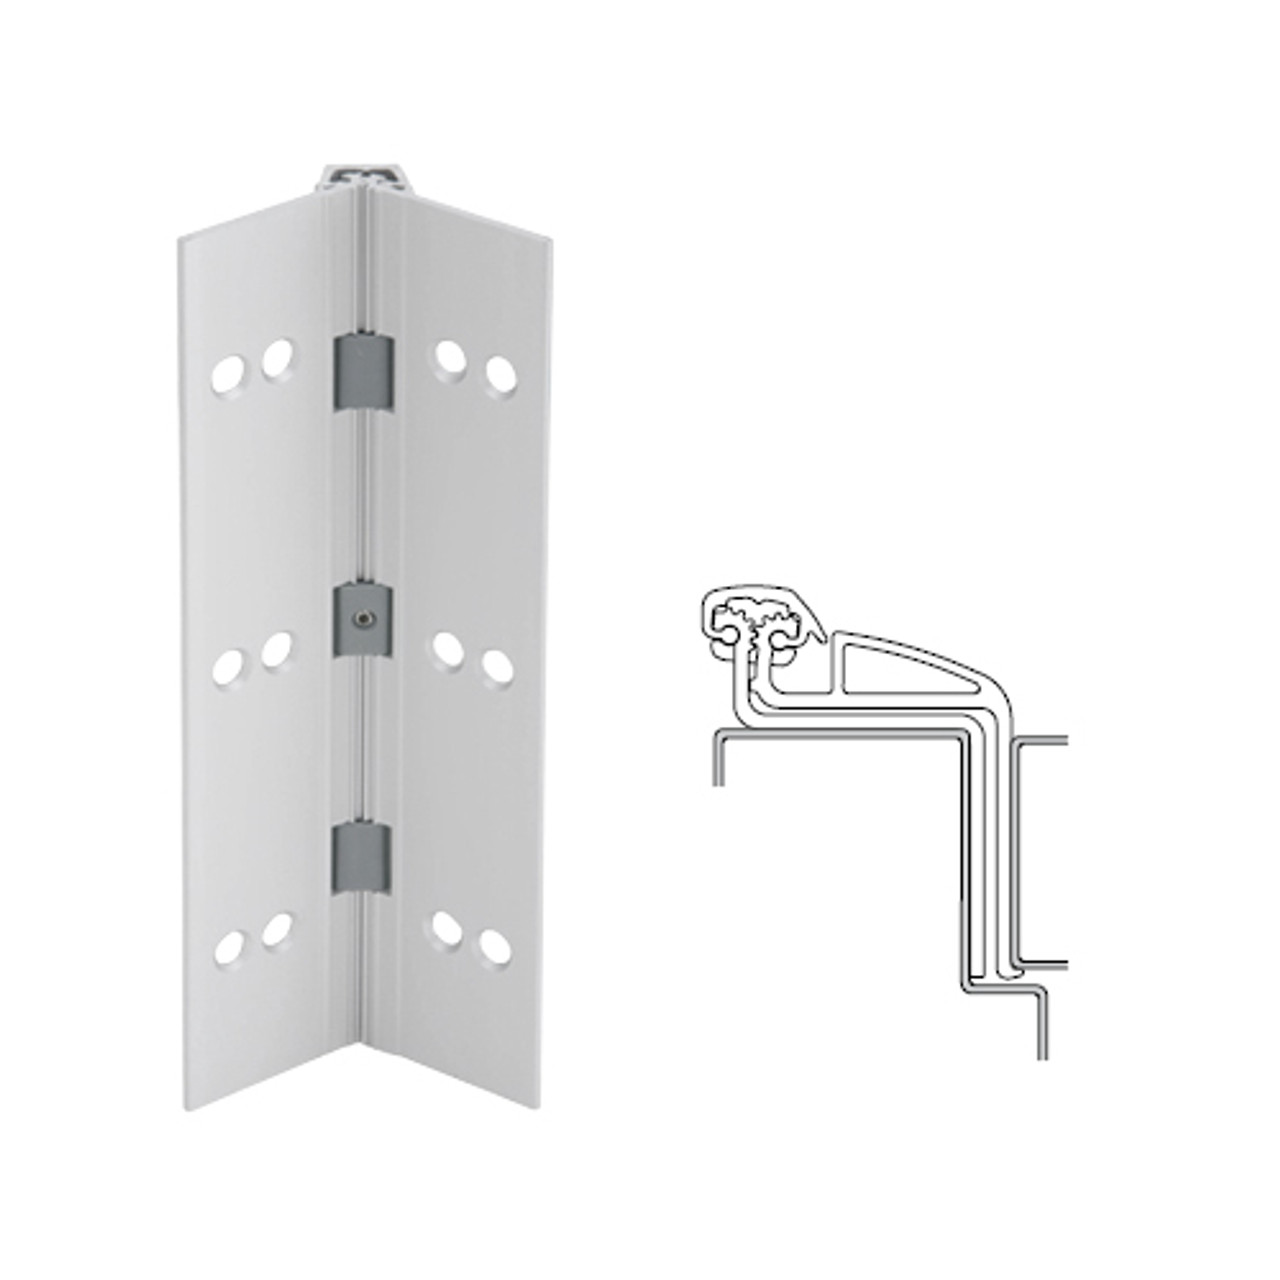 041XY-US28-85-TFWD IVES Full Mortise Continuous Geared Hinges with Thread Forming Screws in Satin Aluminum